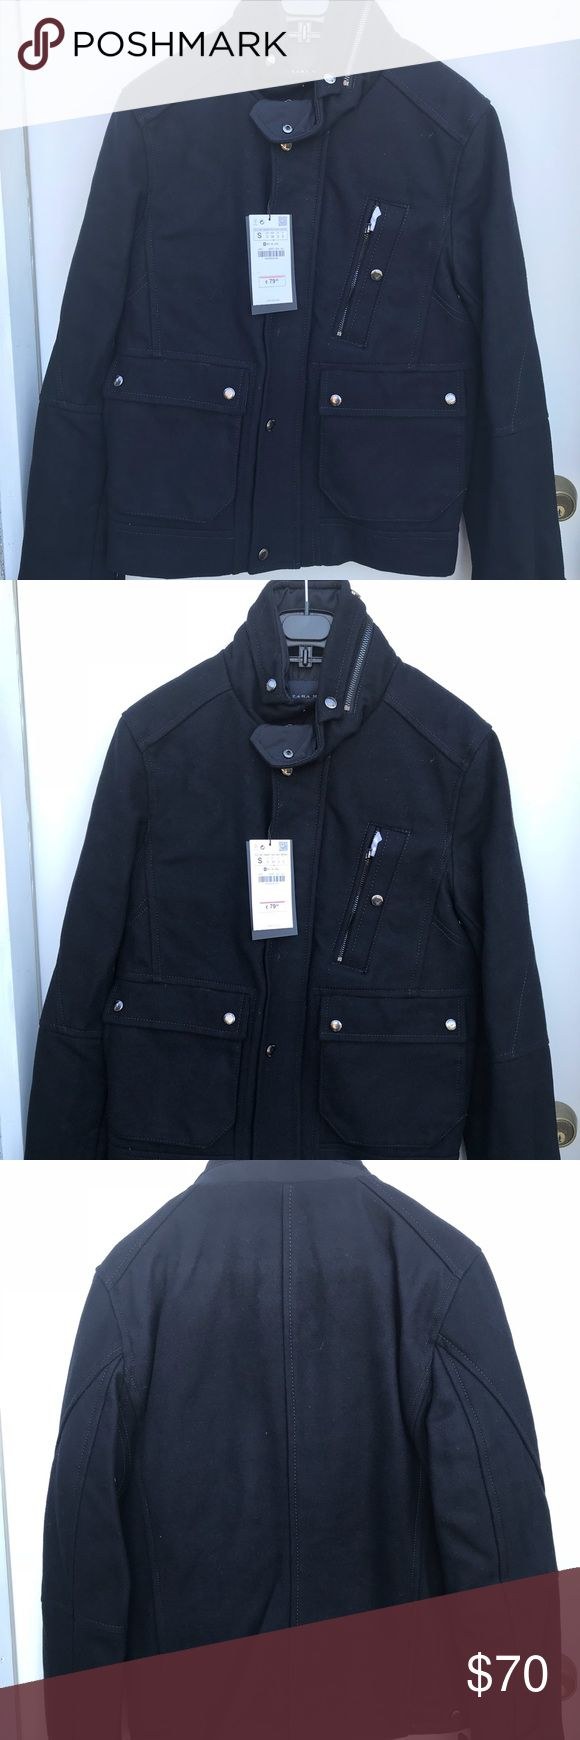 Winter coat Men's peacoat Zara Jackets & Coats Pea Coats